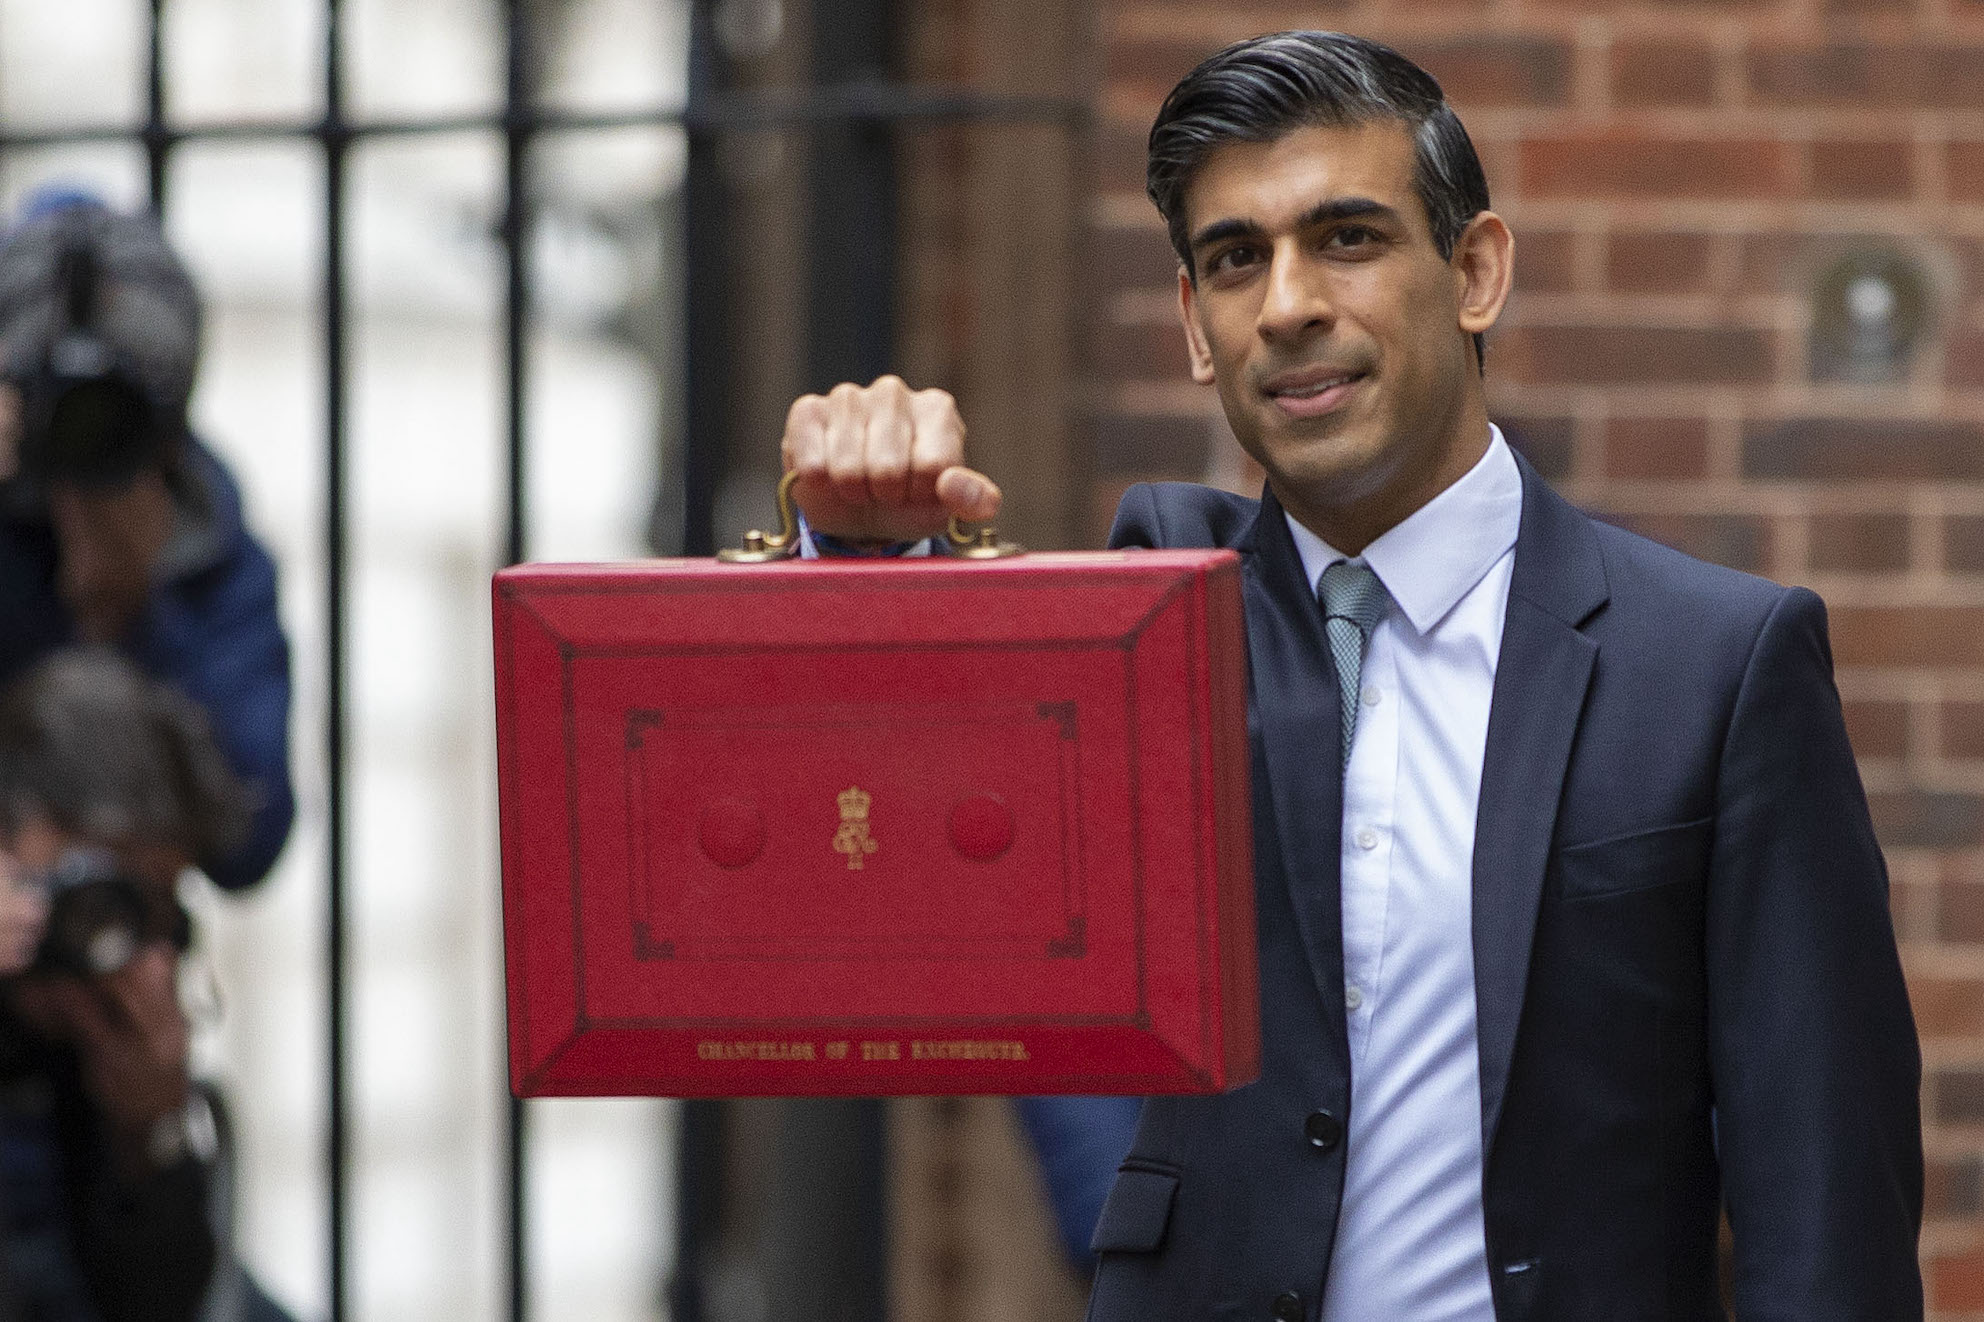 Autumn Budget 2021: From minimum wage increases to fuel duty freezes - here's a full round-up of today's big announcements